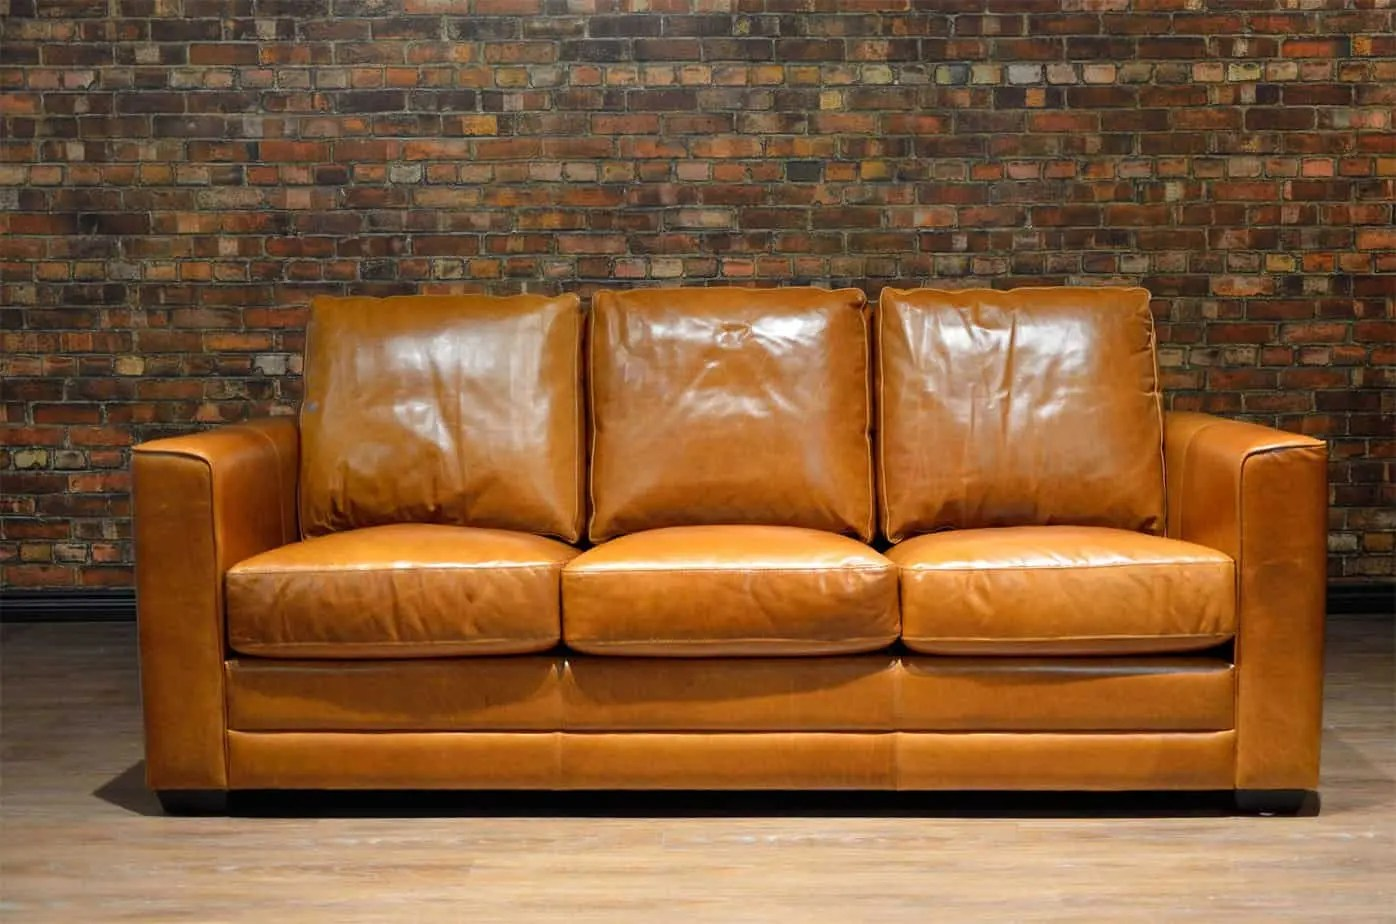 Italian Furniture Toronto Leather Sofa And Sectional Choose Color Leather And Size